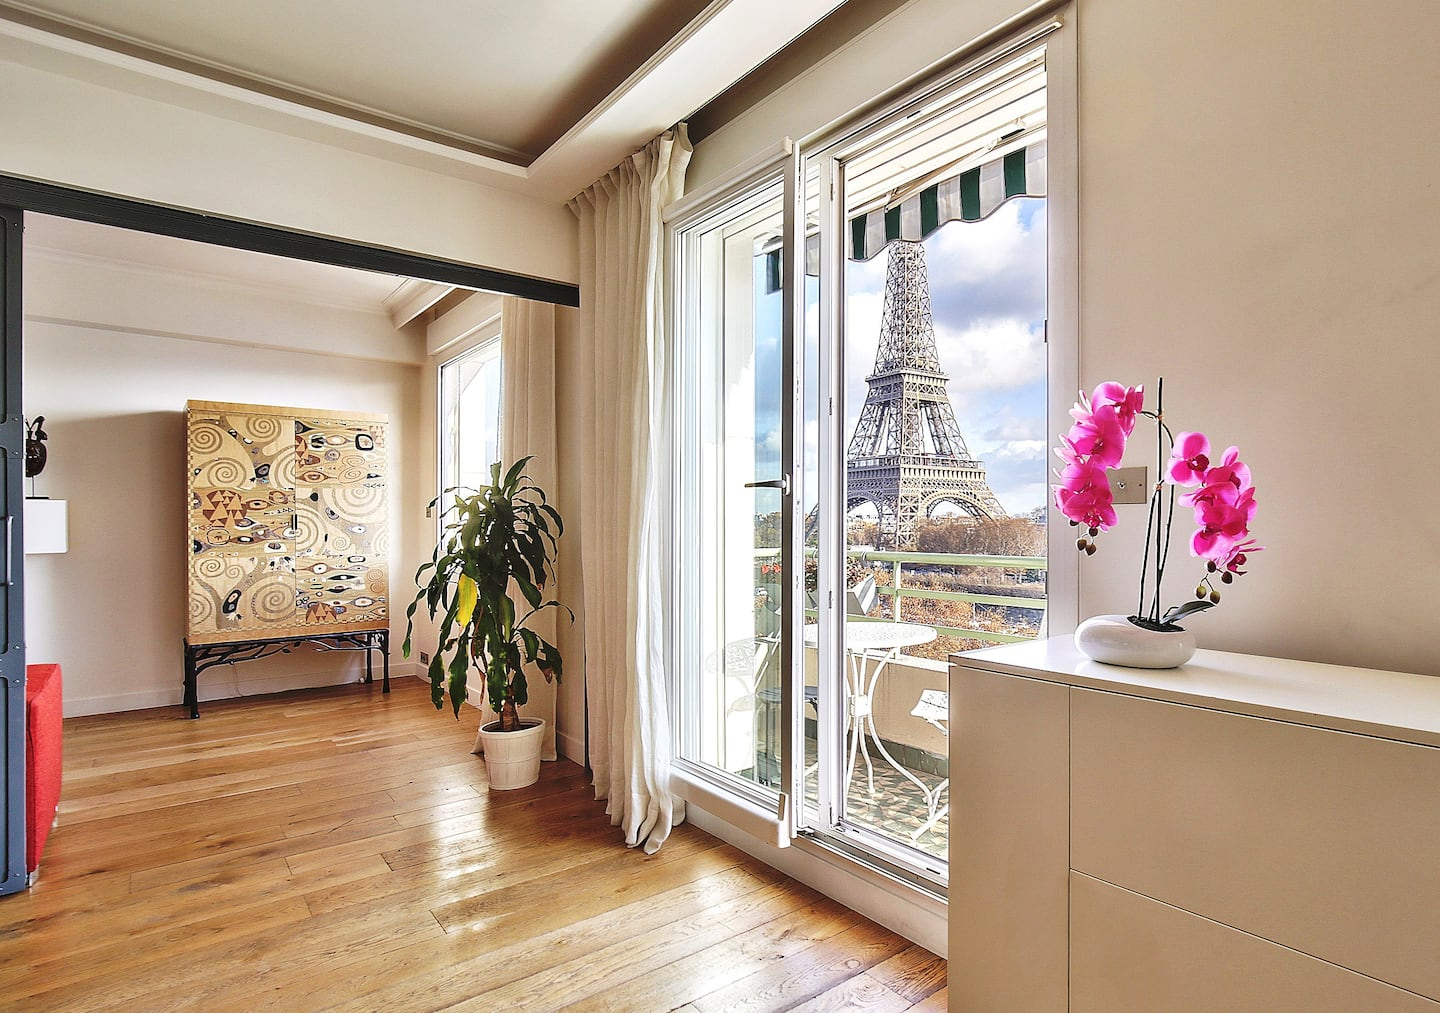 The Coolest Airbnbs in Paris With Eiffel Tower Views & More!